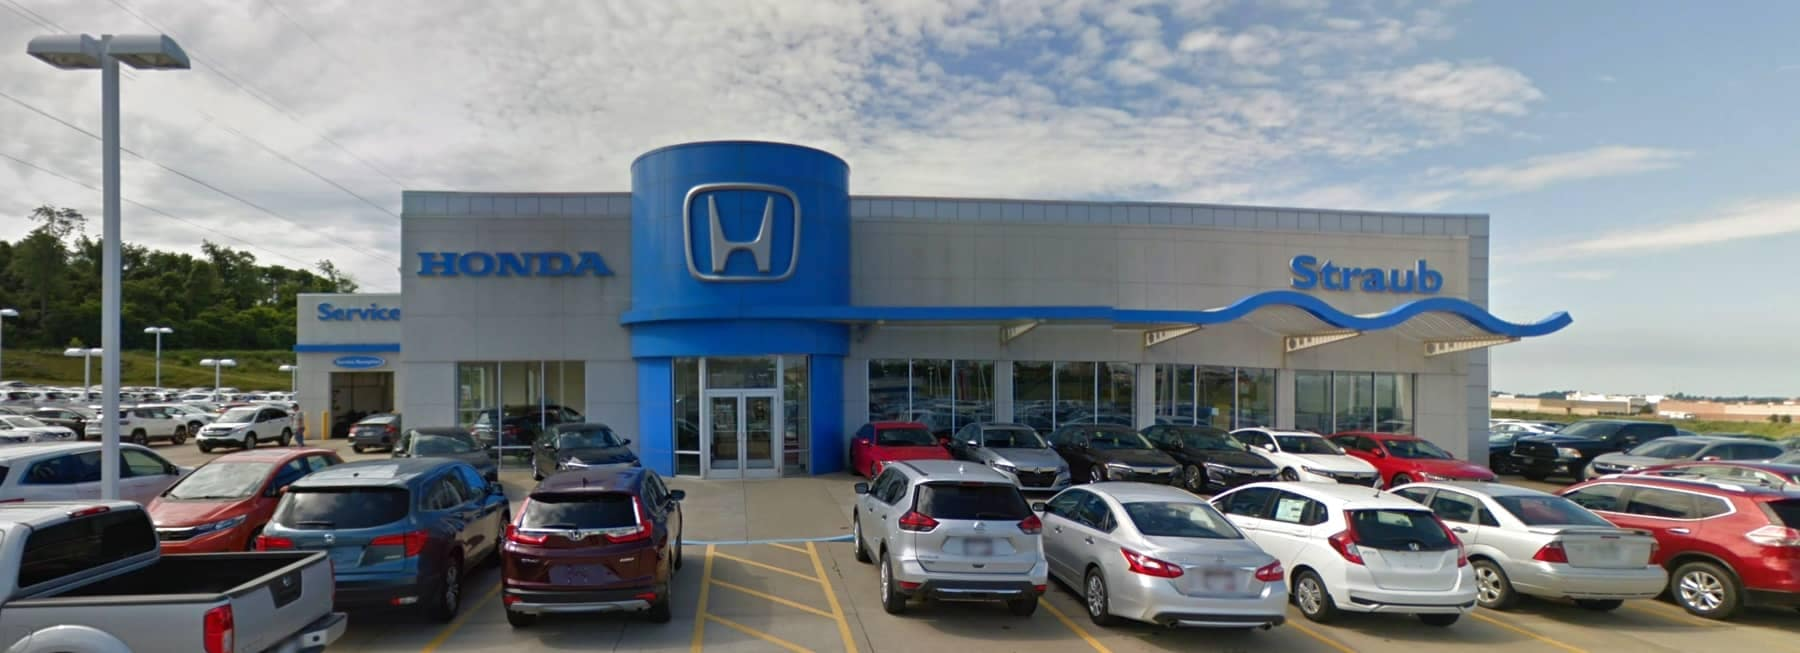 An exterior shot of Straub Honda dealership  during the day